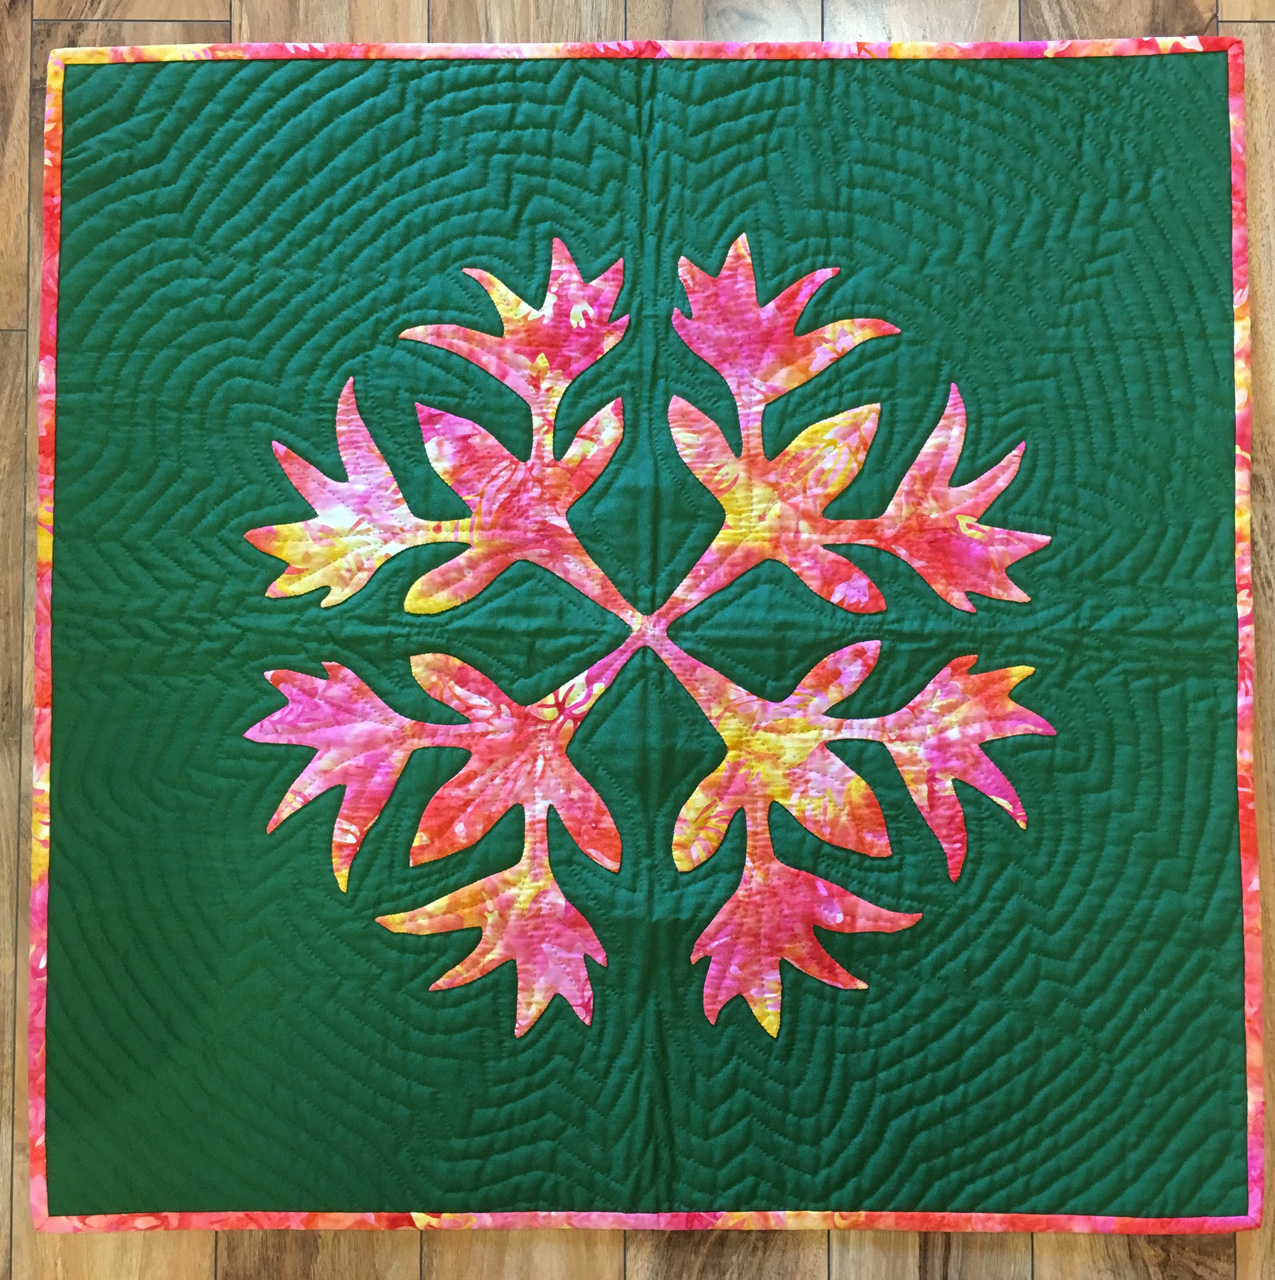 Bird of Paradise Quilted Panel in Green and Multicolored by Noreen Tretick